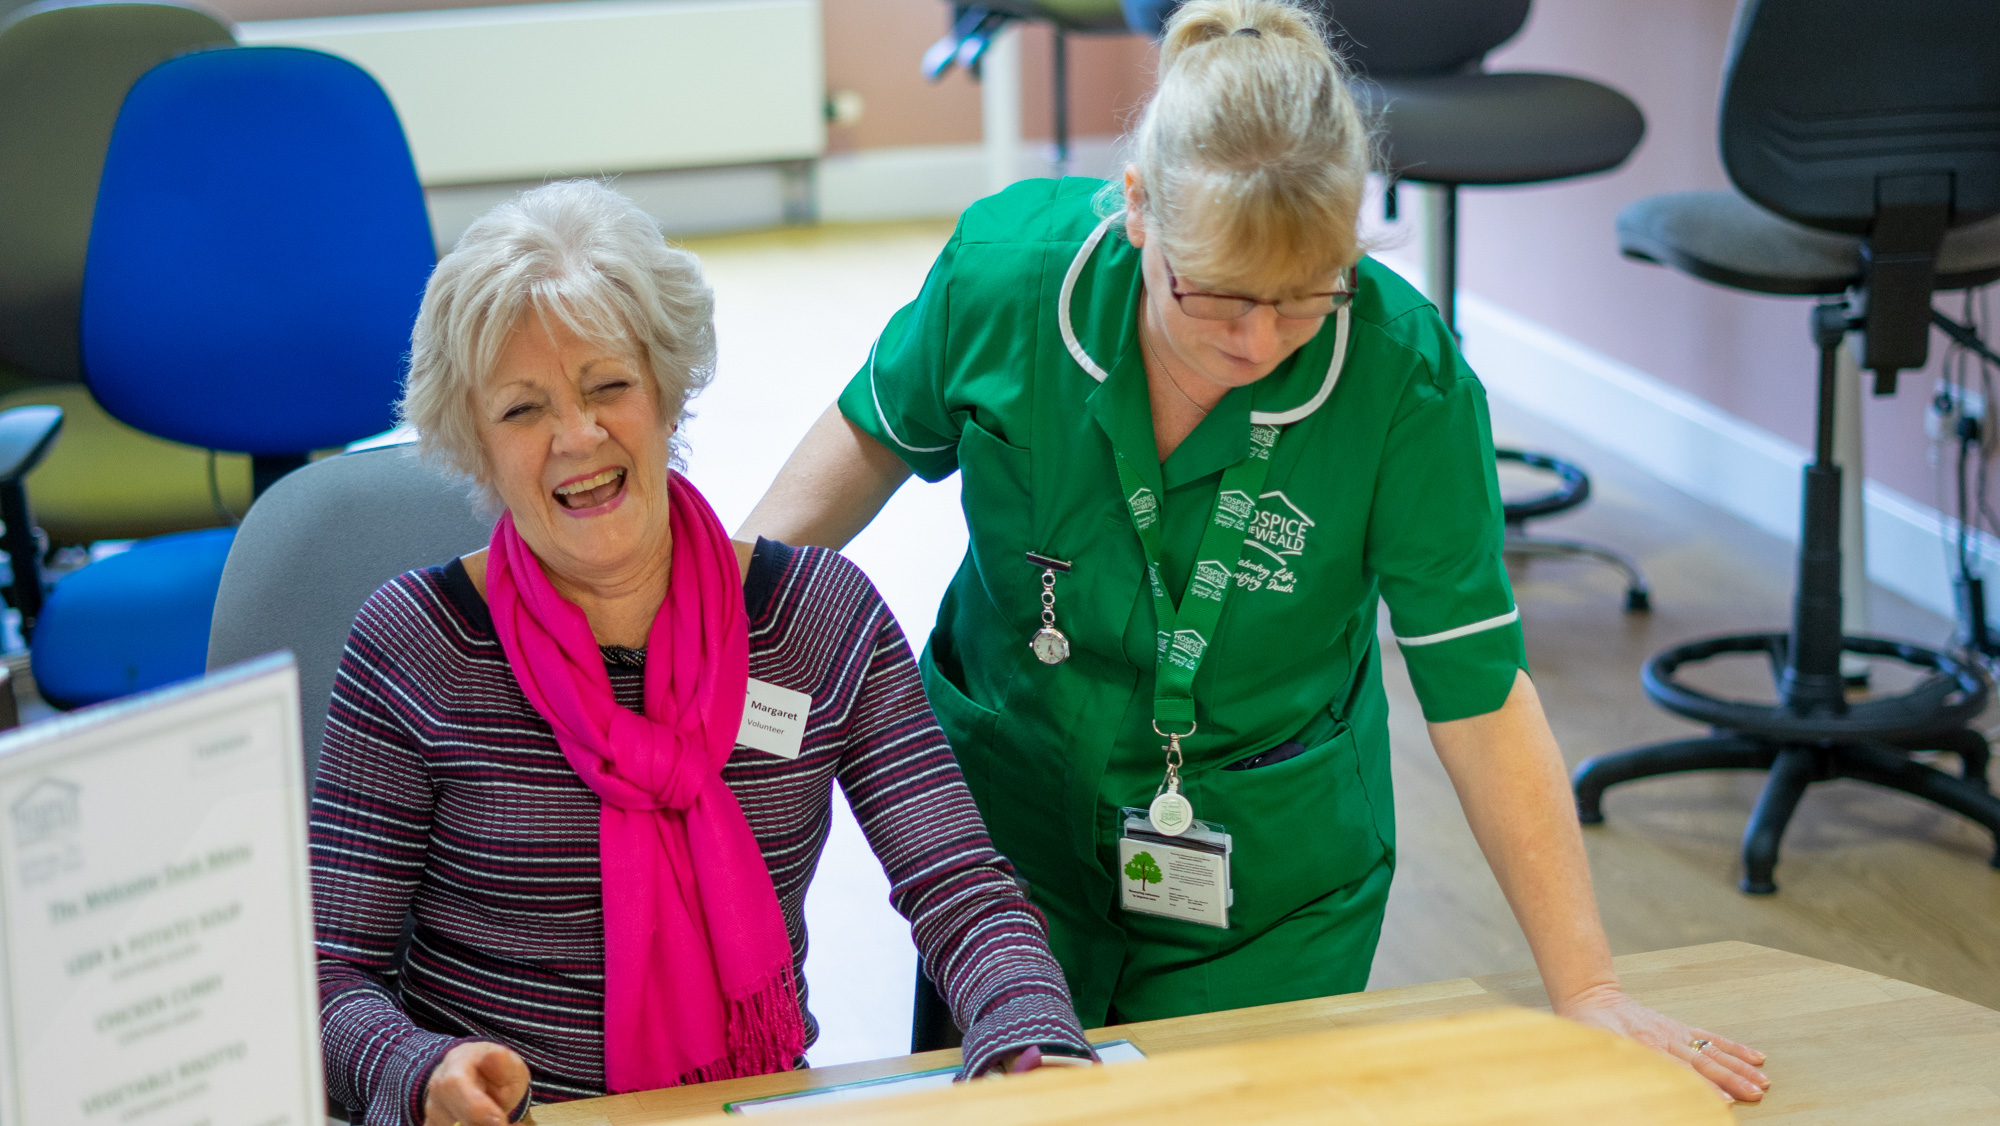 Margaret volunteer on the ward laughing with nurse